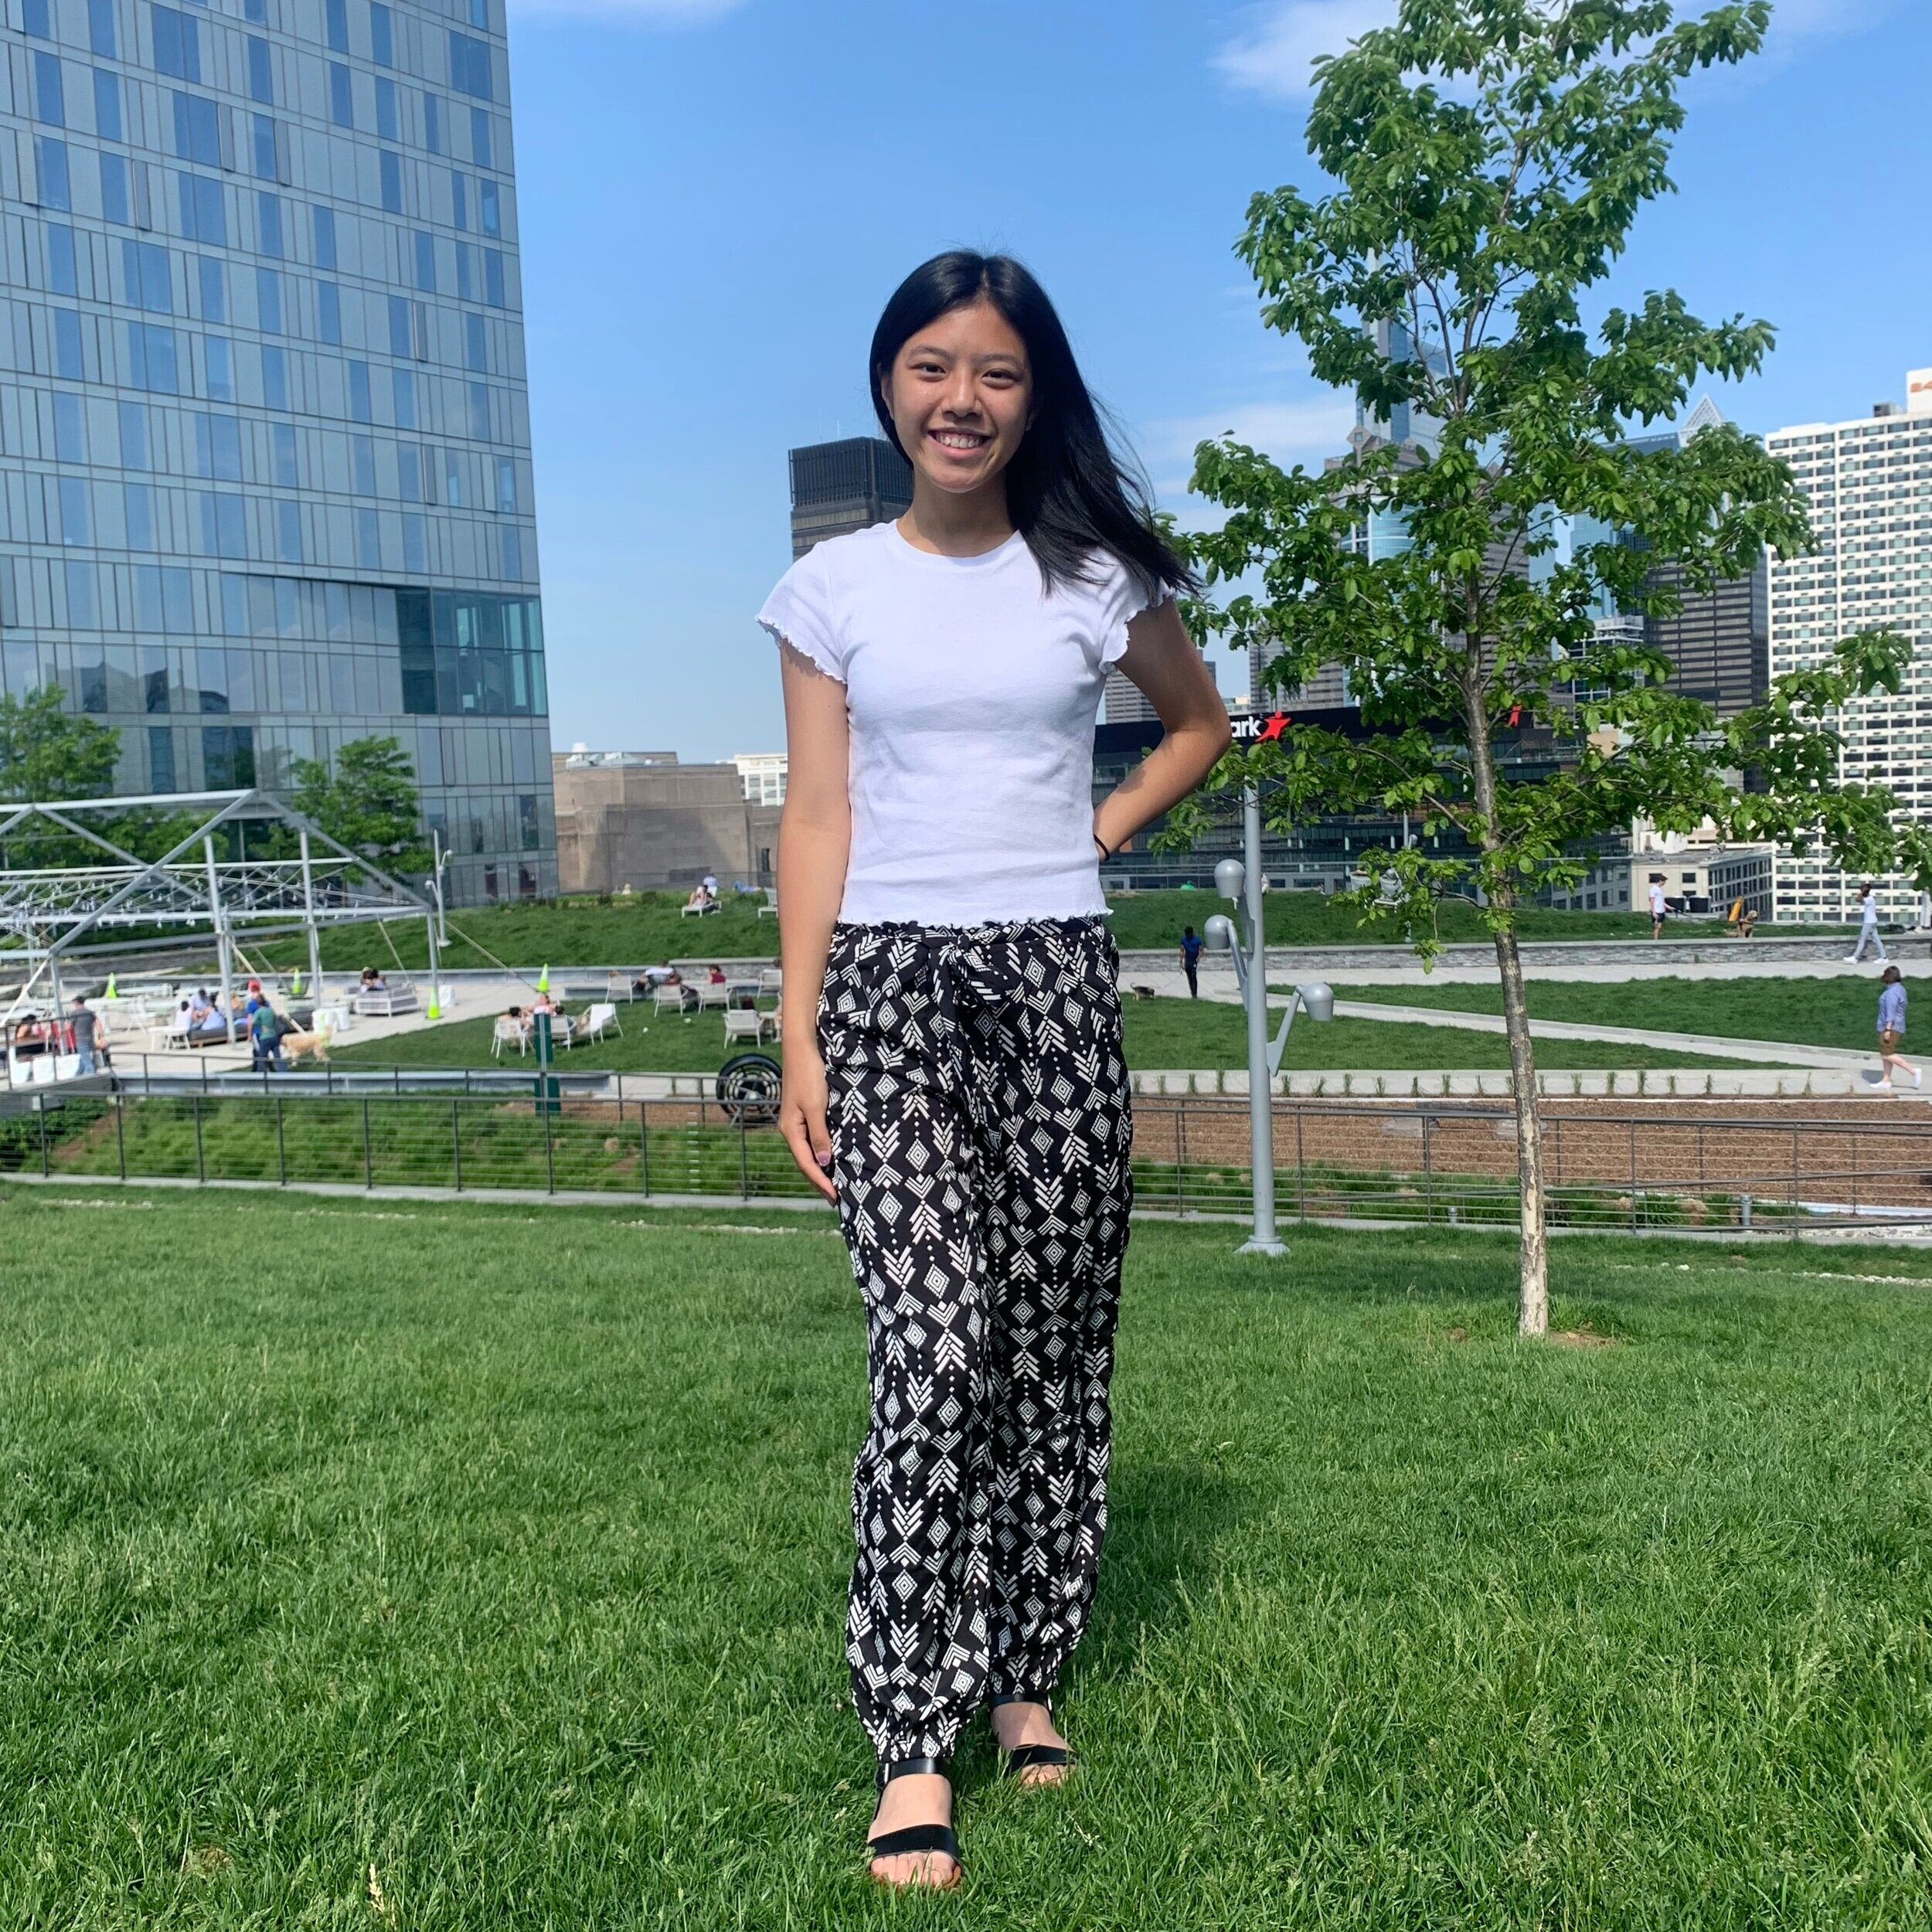 """Chri Ho    Pronouns:  She/Her/Hers   Academic Year:  Freshman   Major:  Actuarial Mathematics   Hometown:  Philadelphia, PA   Cultural Identity:  Chinese American  """"Karate, drawing/painting, student government, math, cryptography"""""""